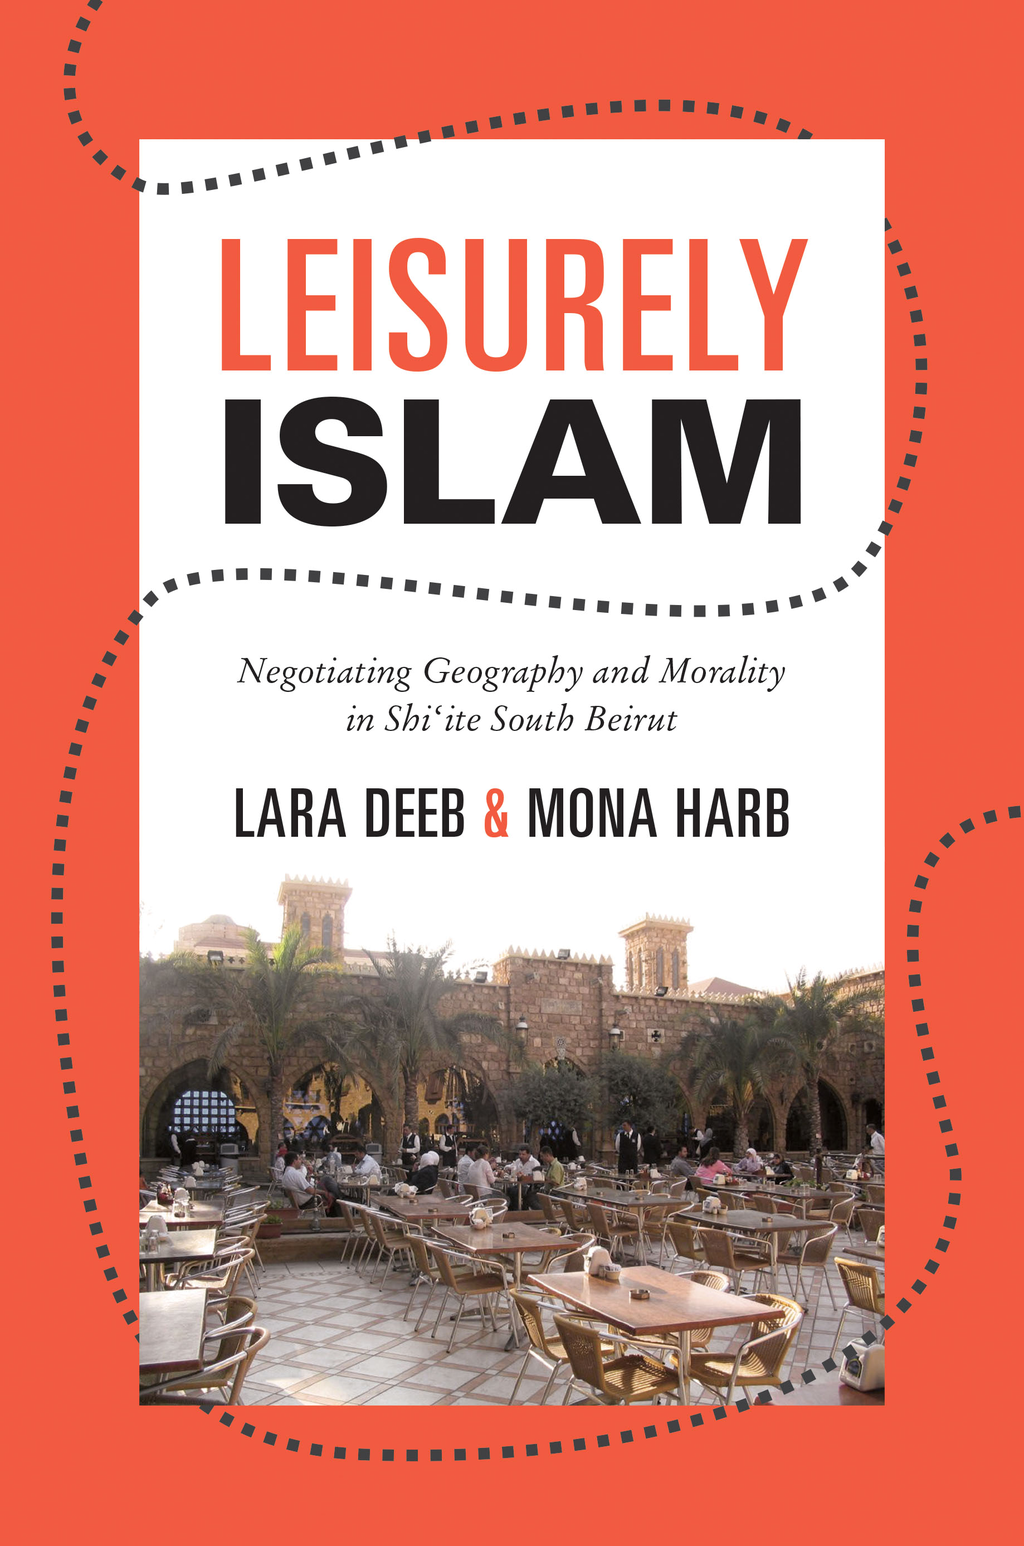 Leisurely Islam Negotiating Geography and Morality in Shi'ite South Beirut